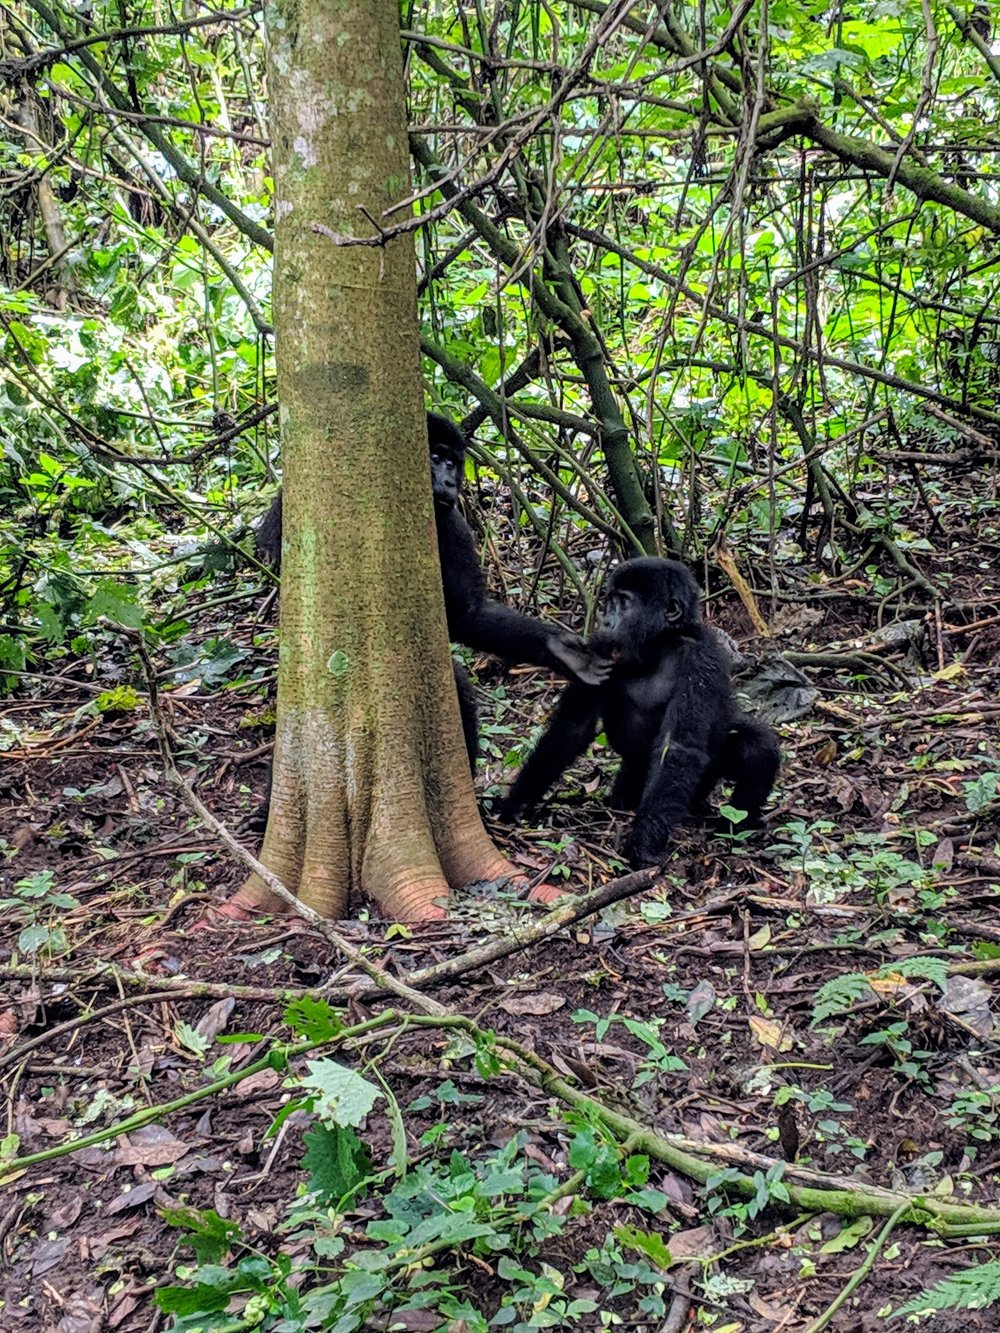 Young gorillas in Bwindi Impenetrable National Park. Photographer: Erman Misirlisoy